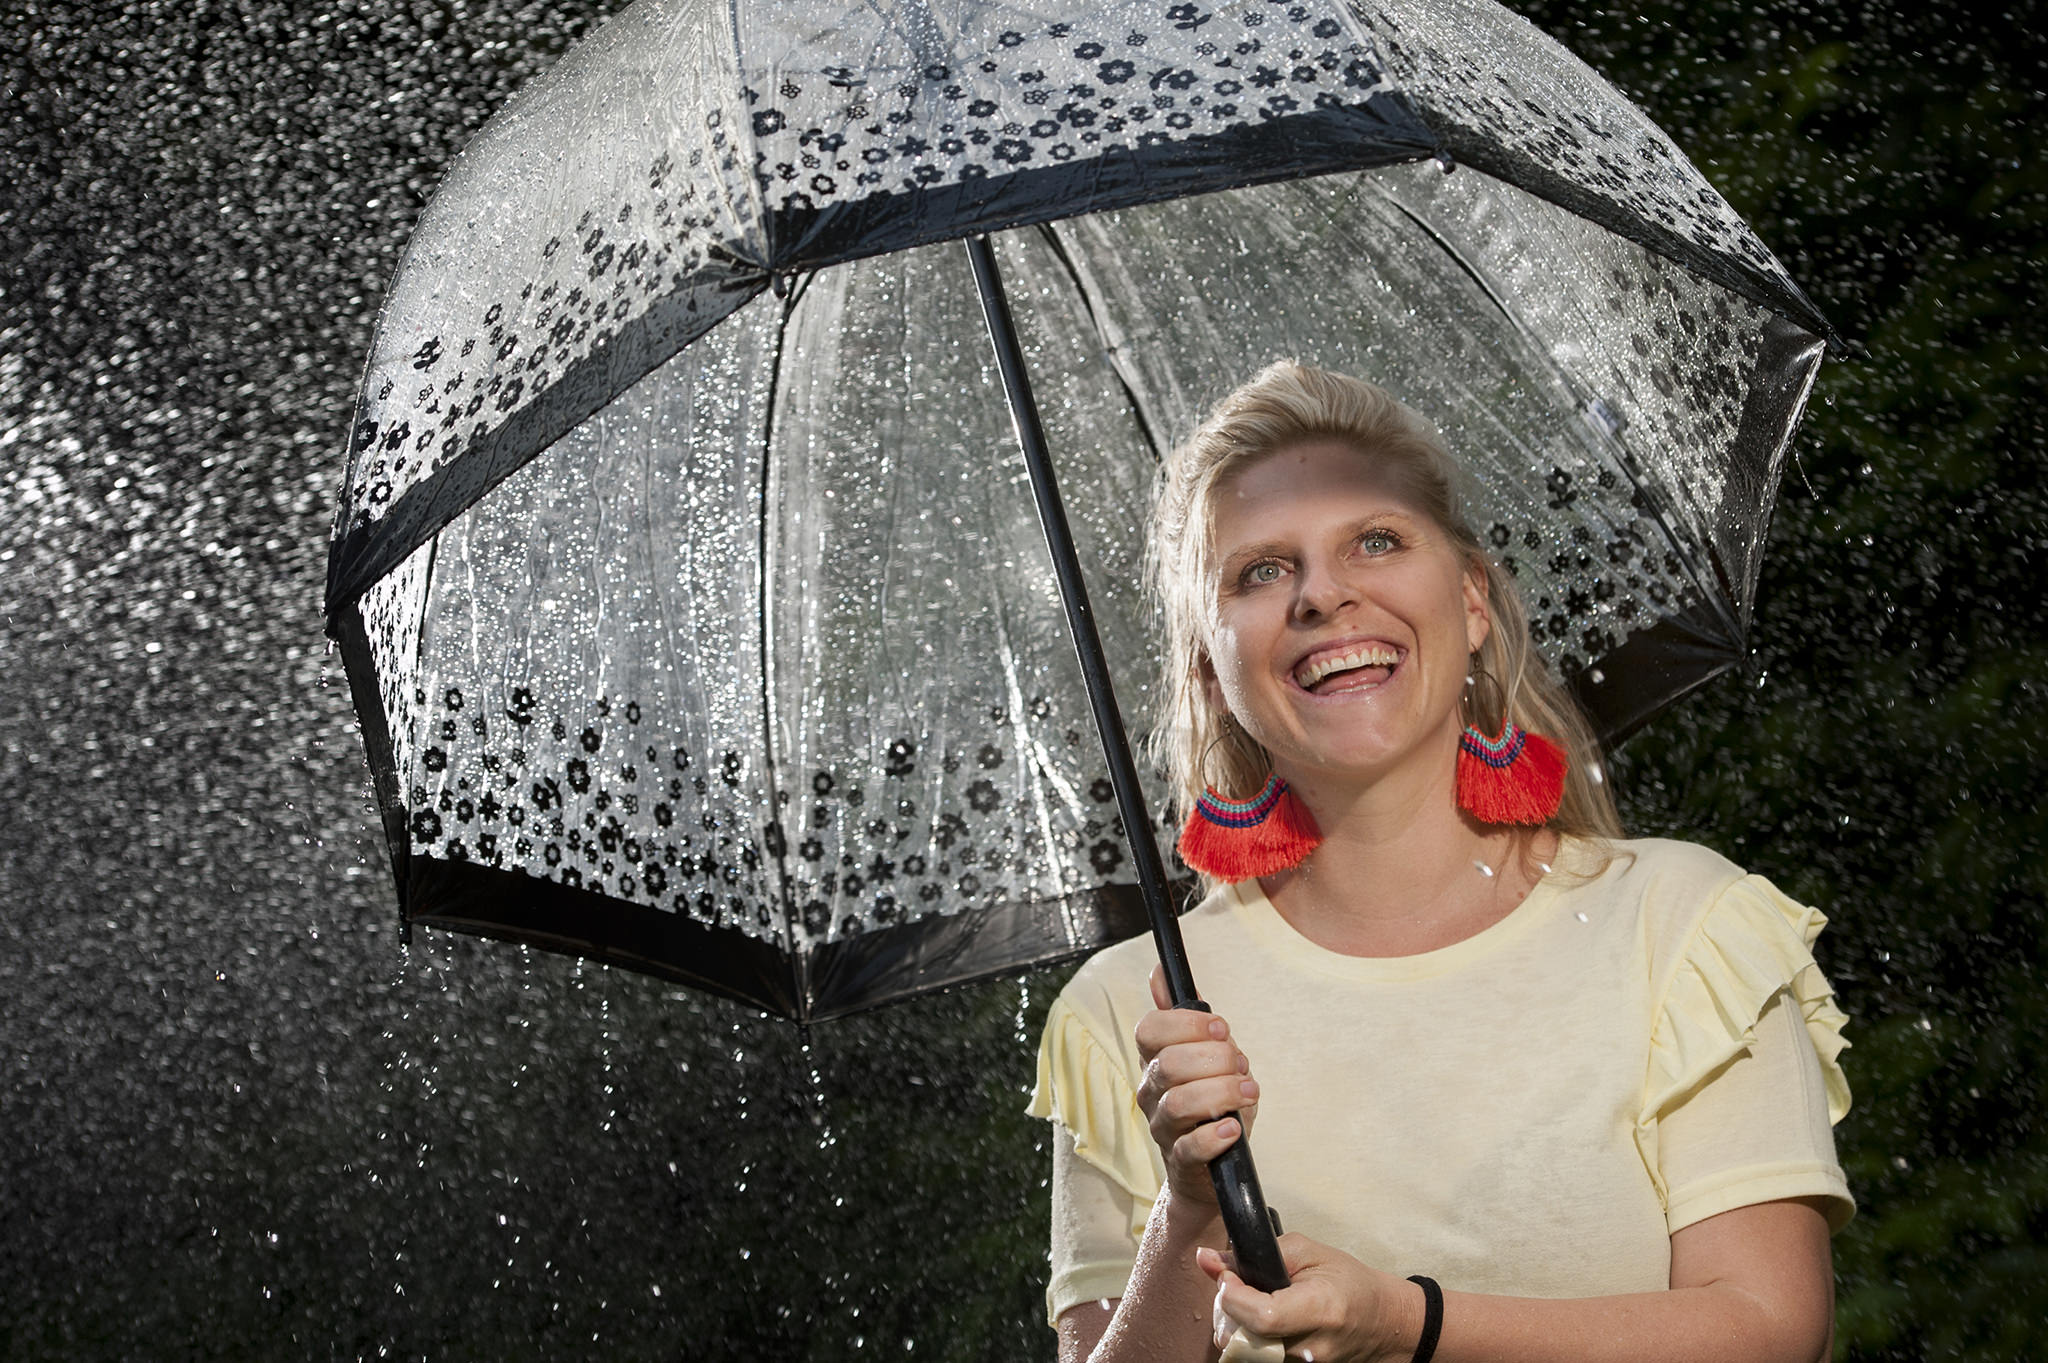 Portrait of a photographer in the rain with an umbrella